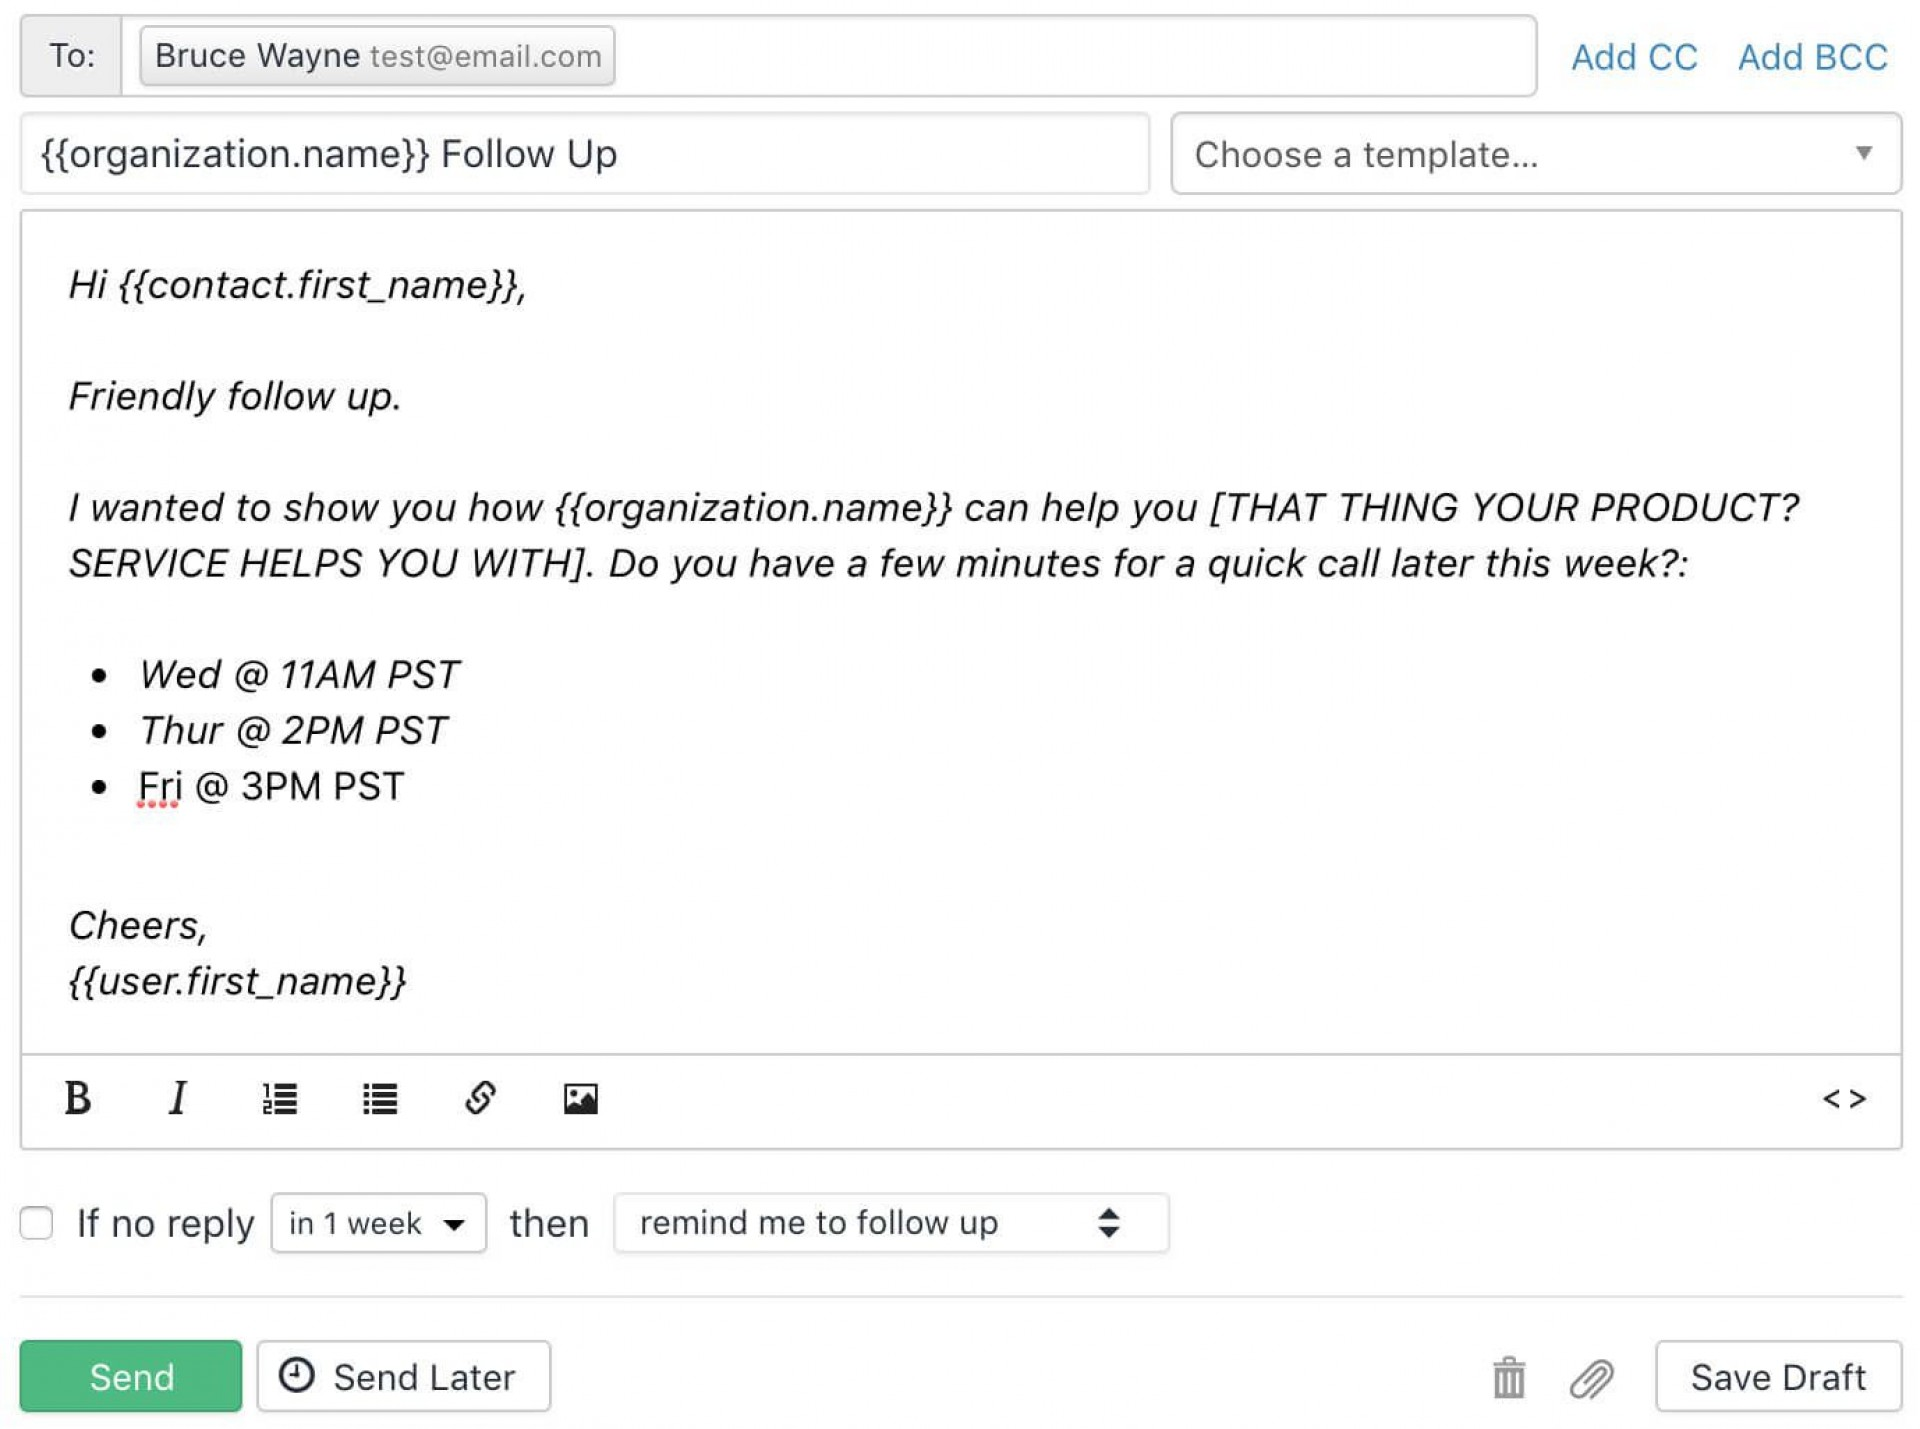 007 Phenomenal Write Follow Up Email After No Response Highest Clarity 1920